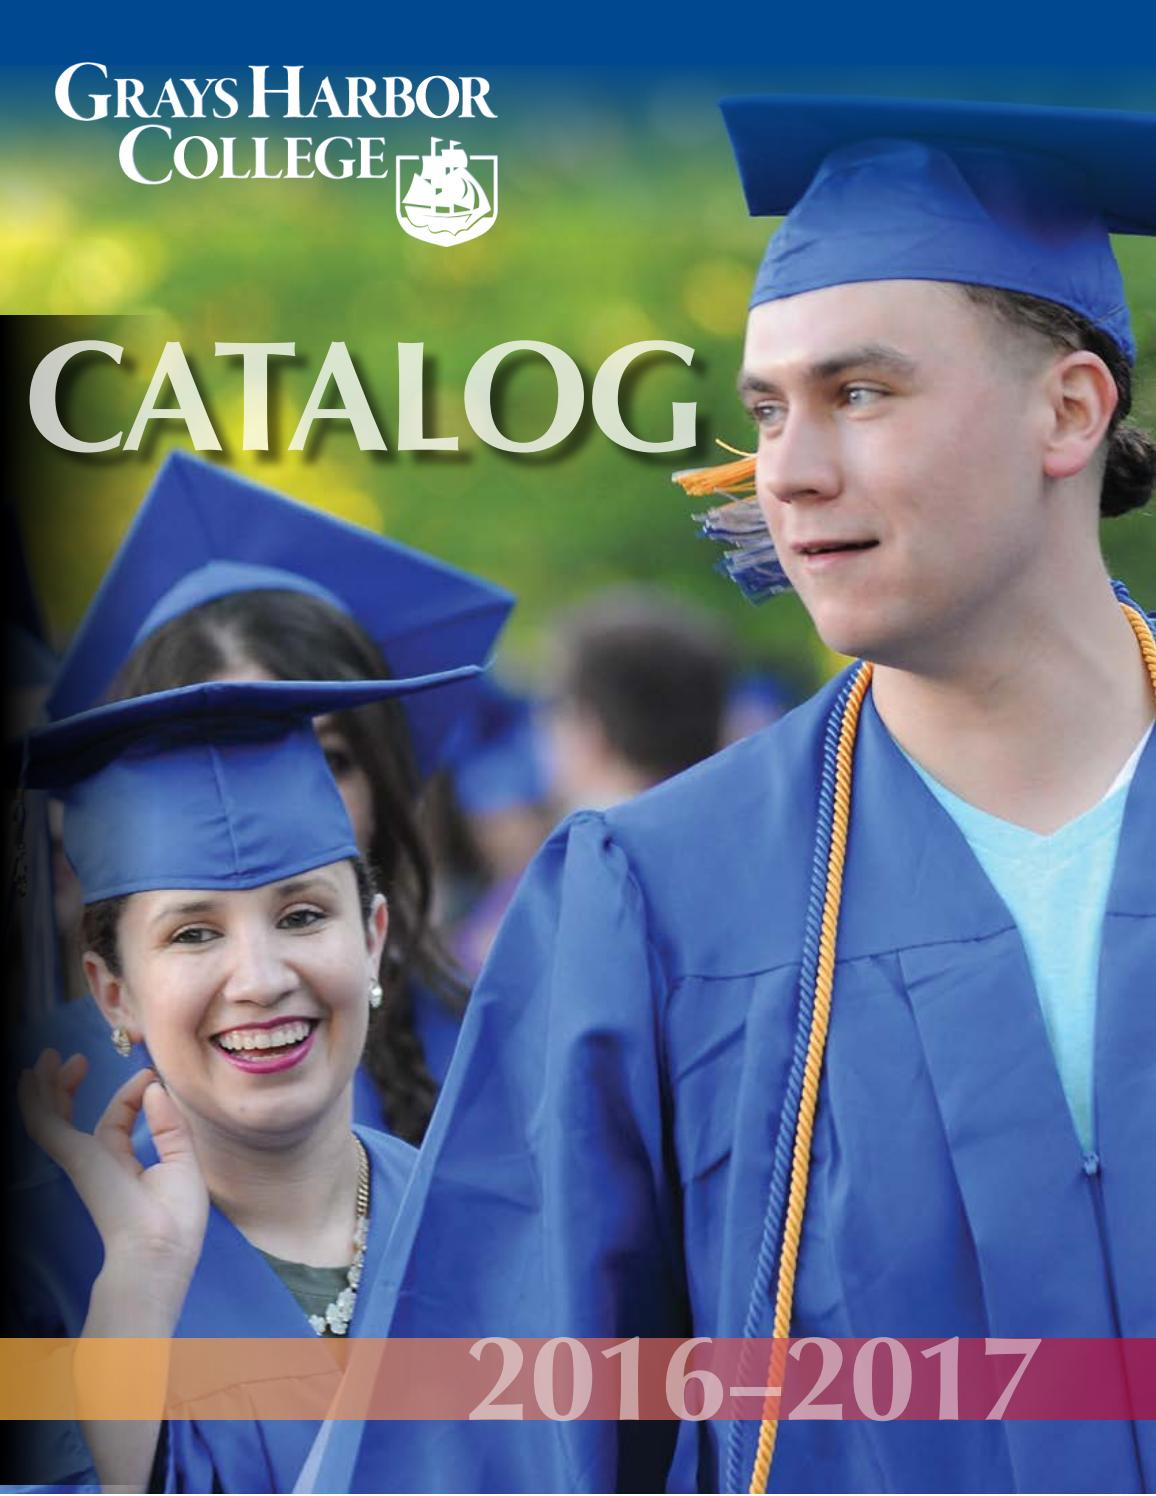 GHC Catalog 2016-2017 by Grays Harbor College - issuu